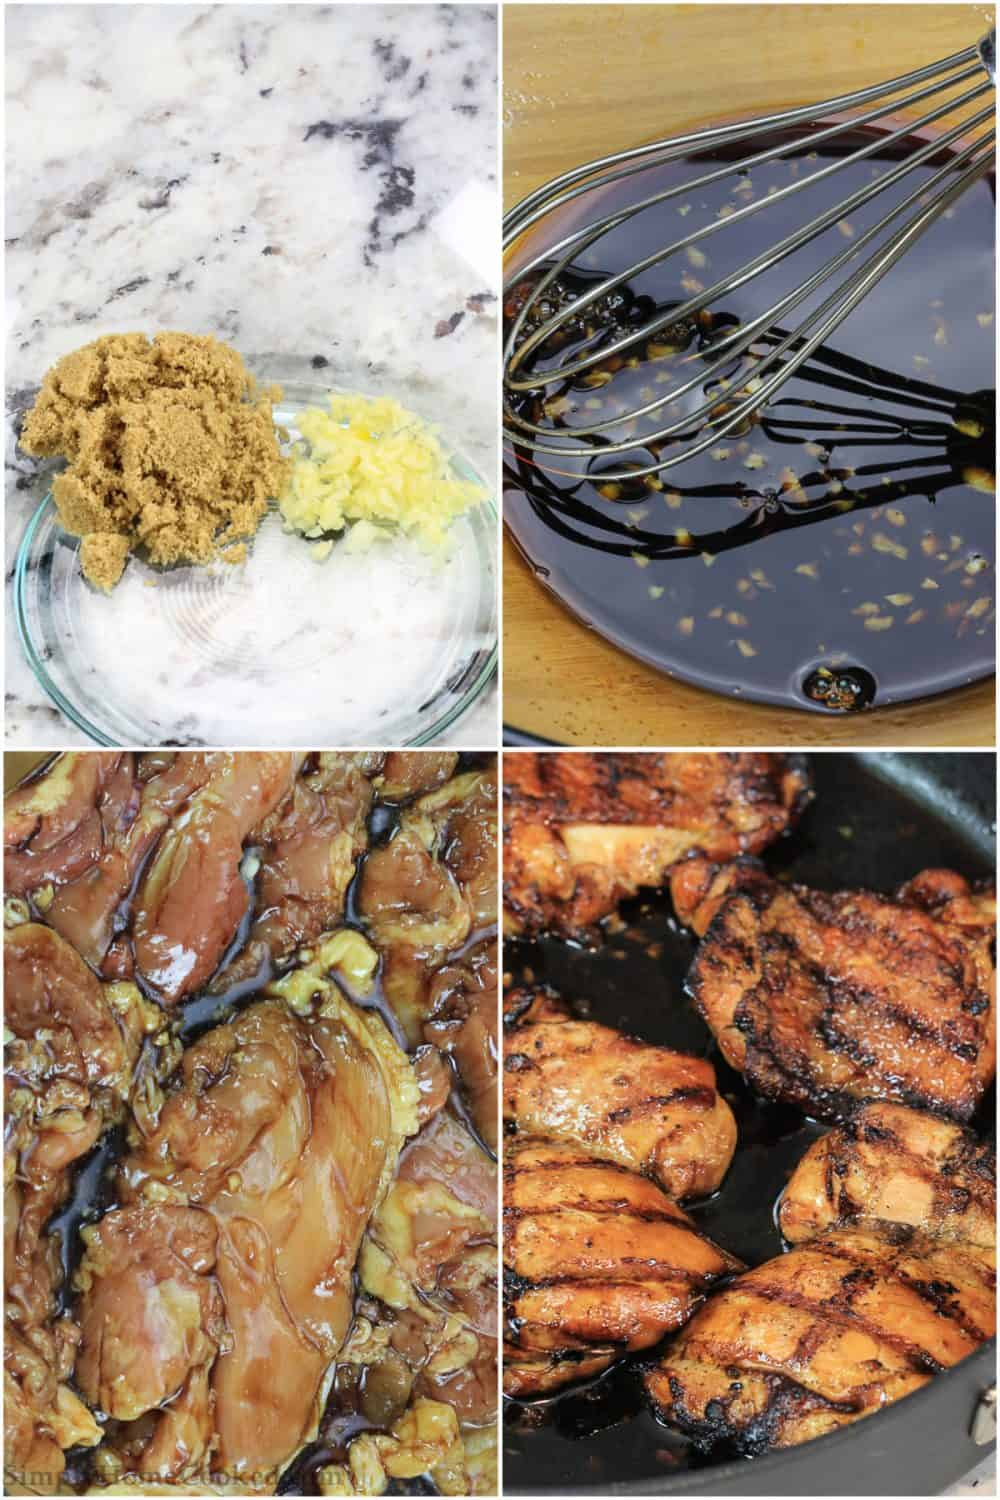 Step by step pictures showing you how to make teriyaki chicken.